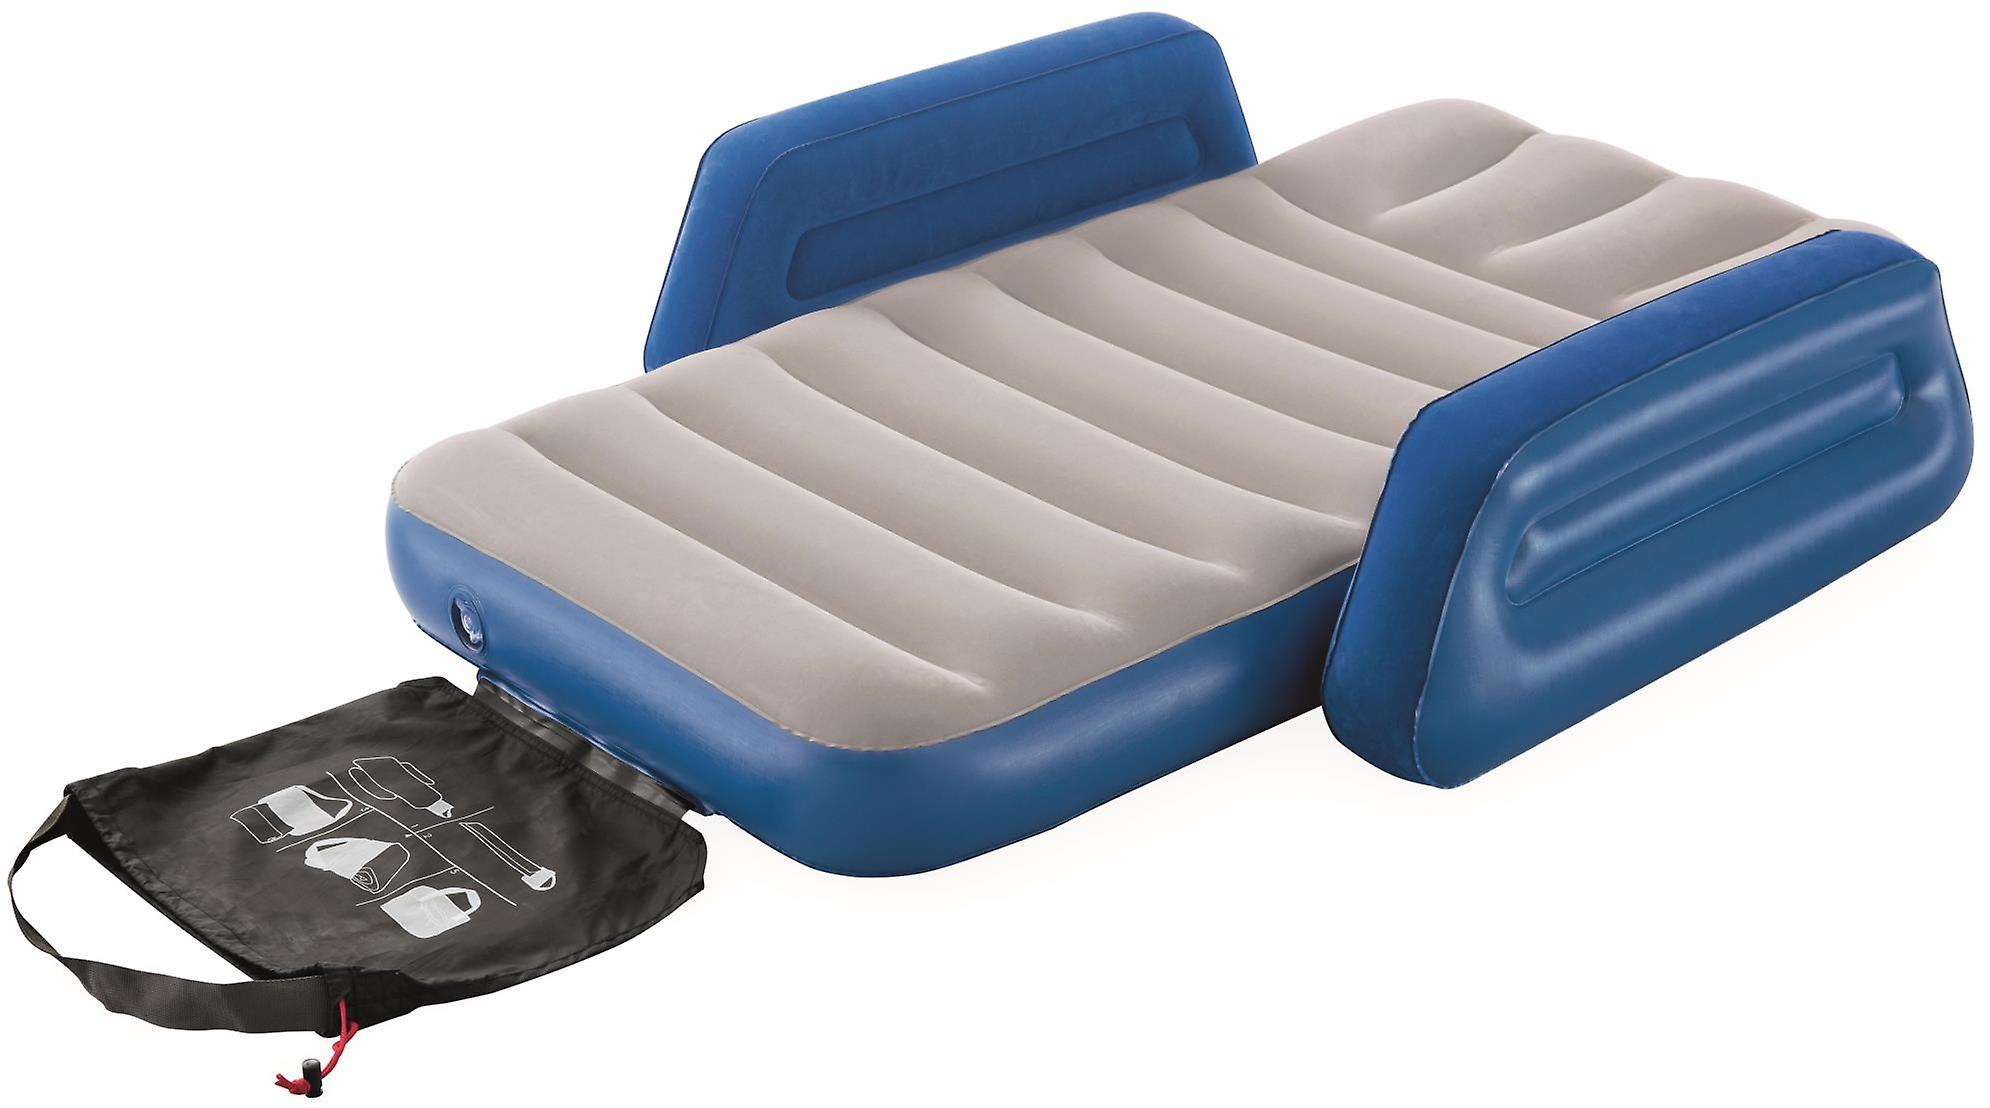 Bestway Lil' Traveler Airbed Inflatable Child's Travel Bed Blue 1 Year Guarantee